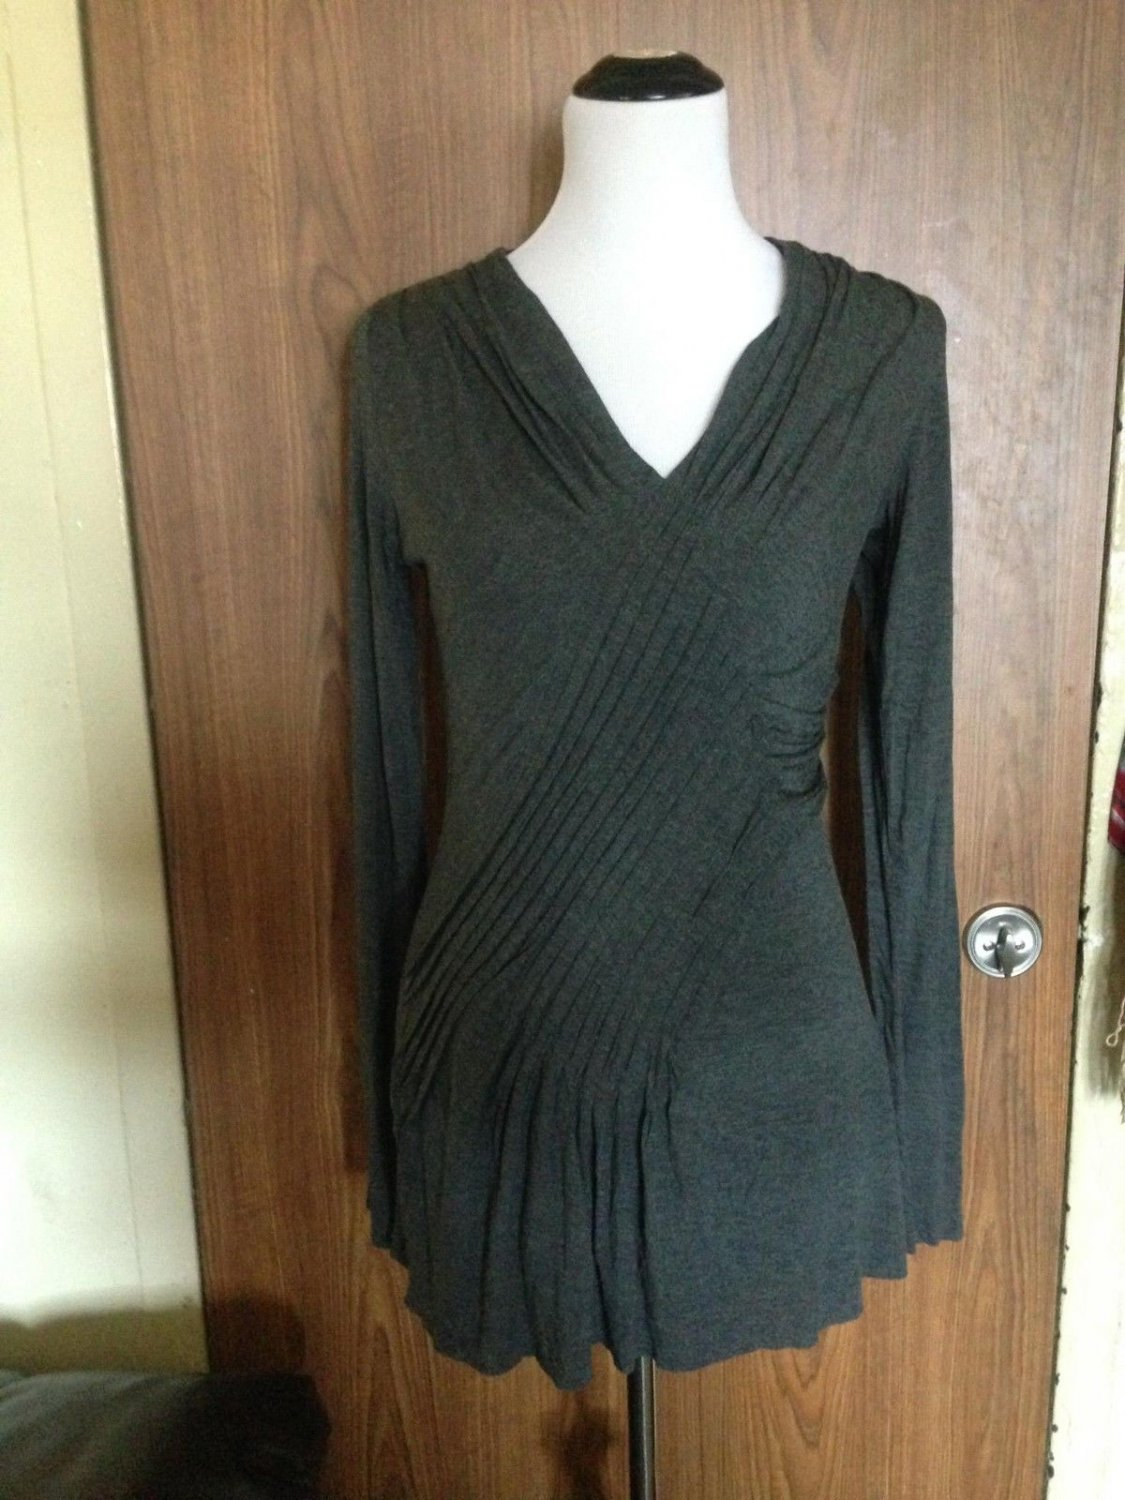 Anthropologie Bailey 44 Gray Bodycon Dress SZ M Made in USA Ruffle Detail Career